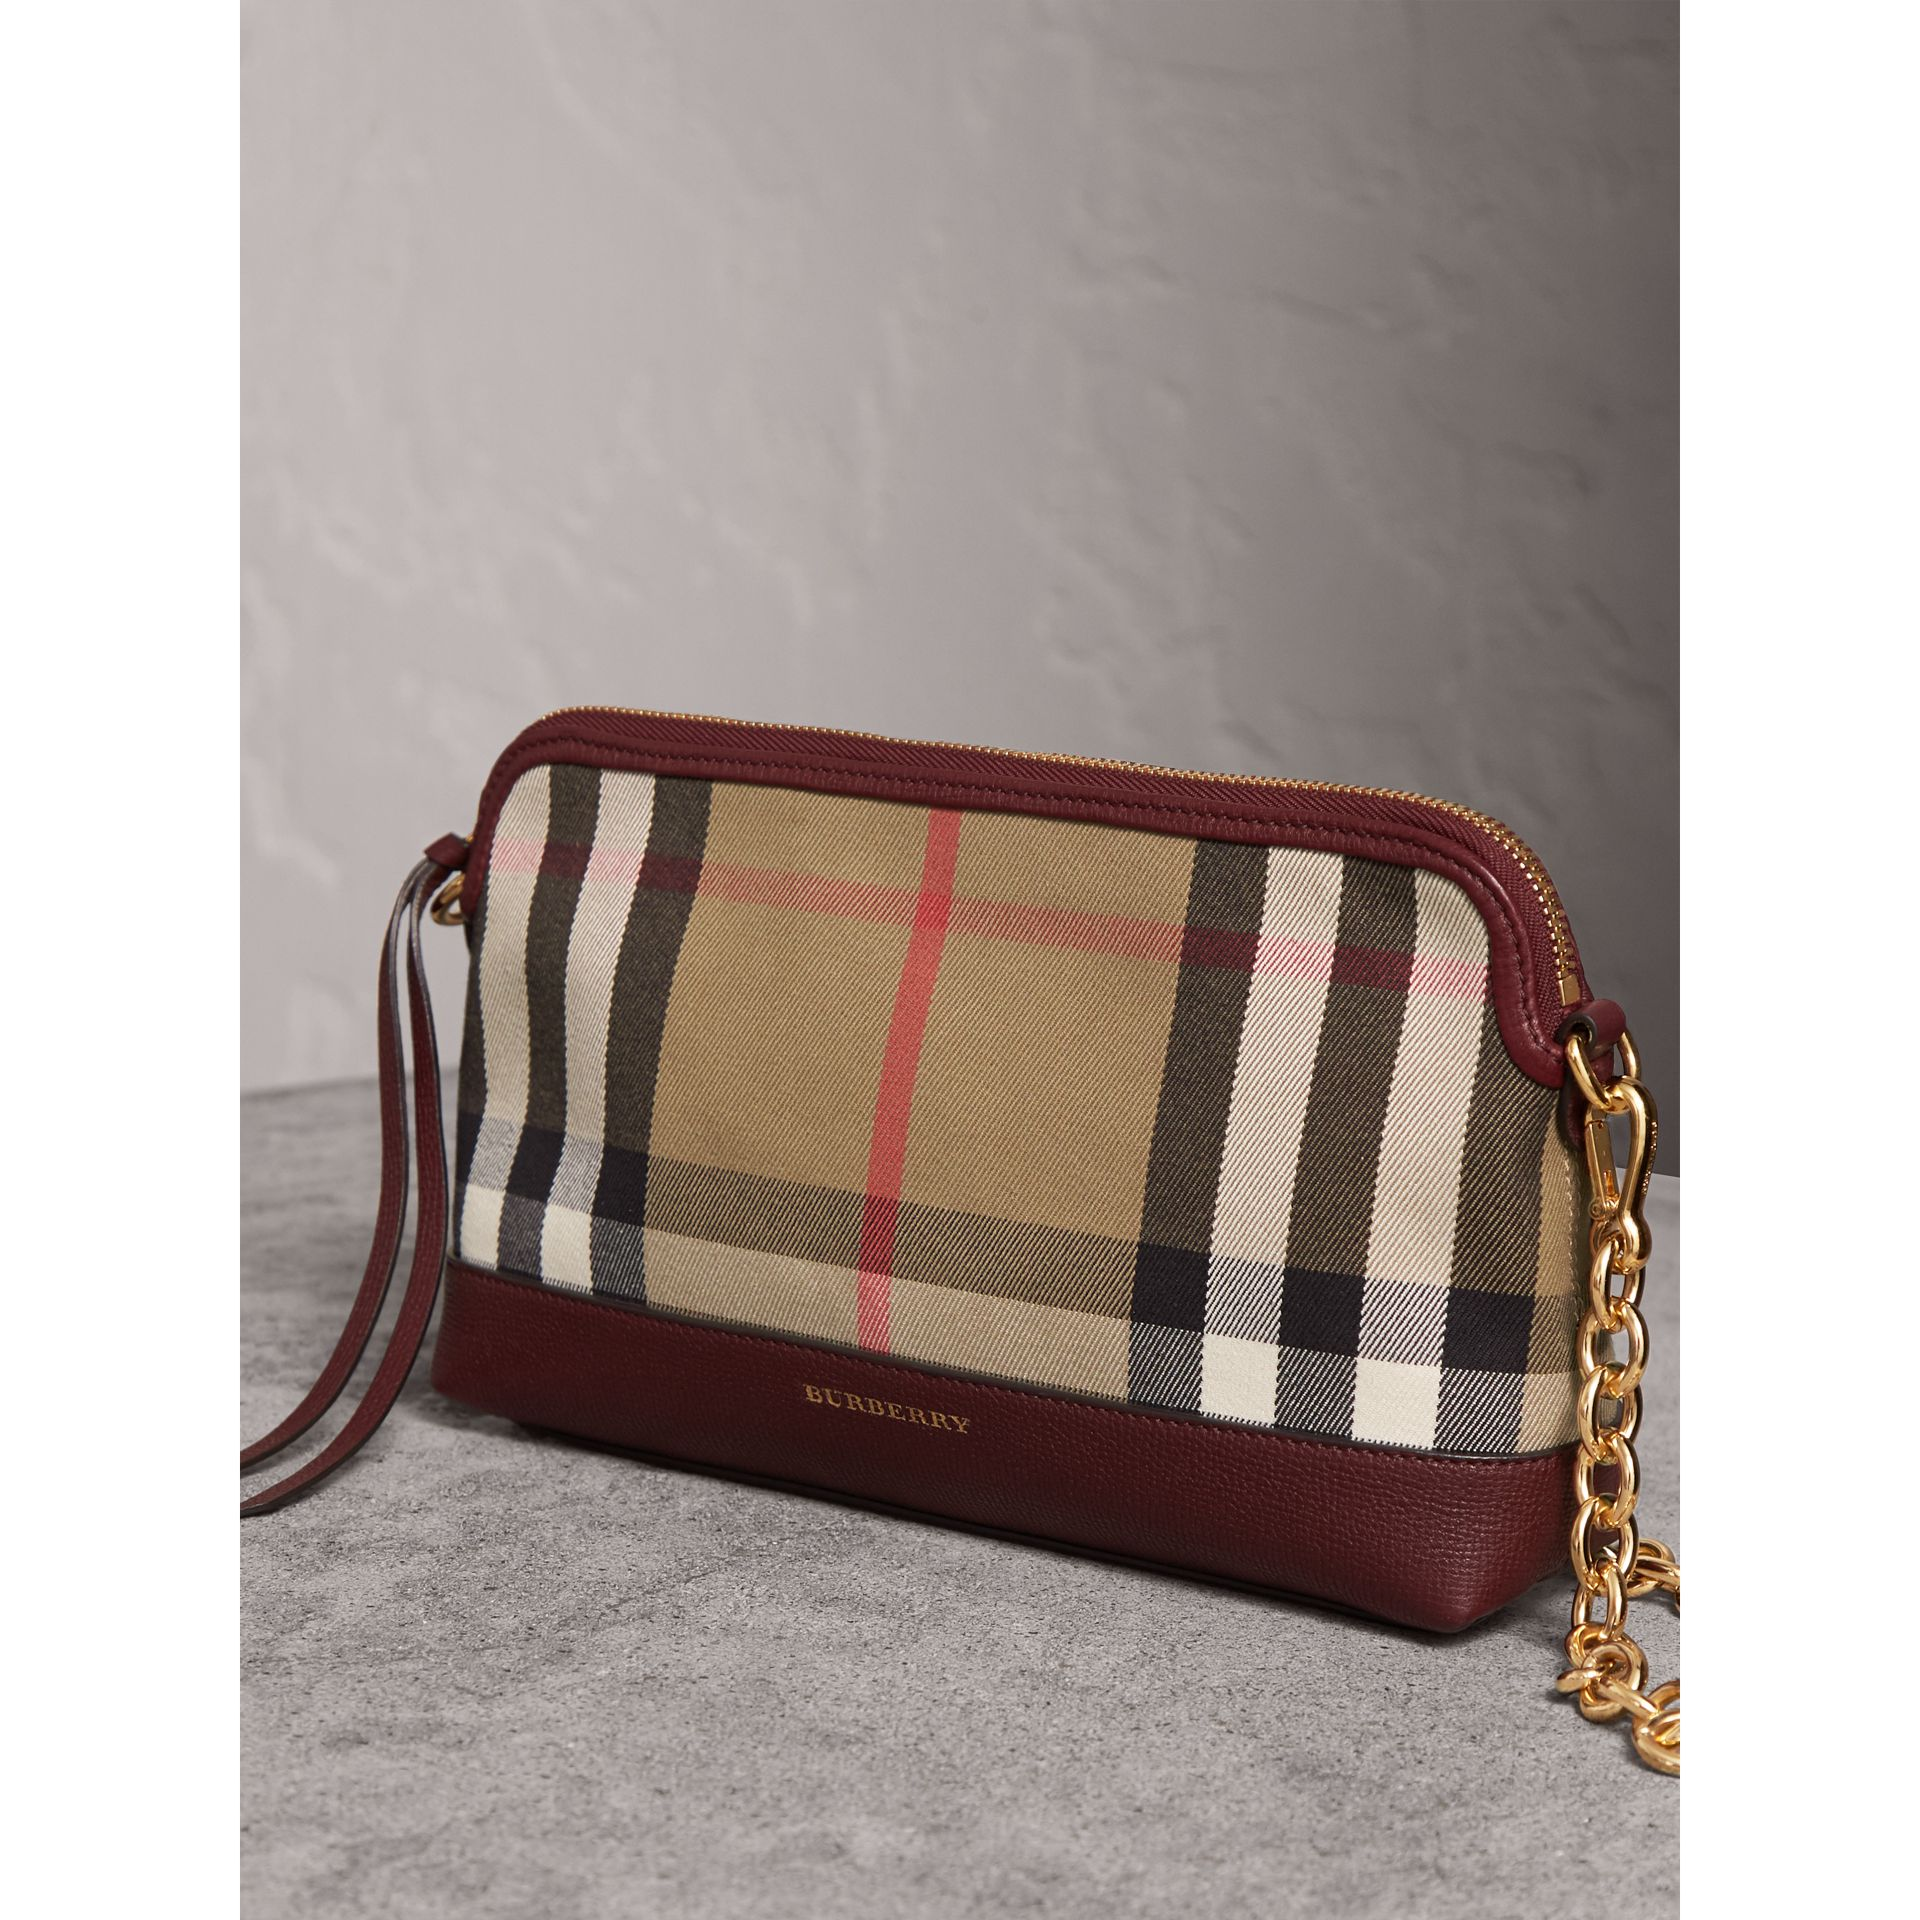 House Check and Leather Clutch Bag in Mahogany Red - Women | Burberry Canada - gallery image 7